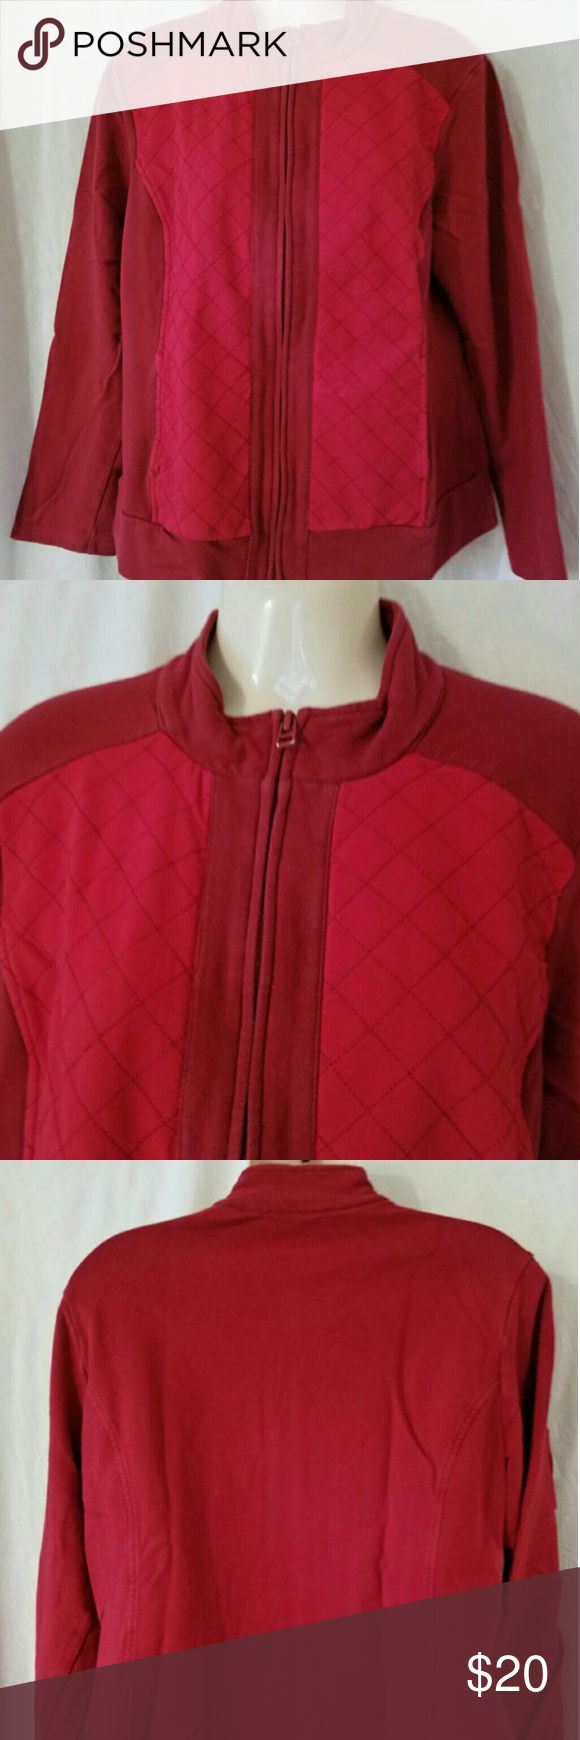 "Coldwater Creek Zip Quilted Sweatshirt Jacket Made by Coldwater Creek Zips down the front Front slash pockets Light red color on a dark red color 95% cotton, 5% spandex Hand wash, line dry      Length 24""     Sleeve 23""     Chest 42""  (Inv 139) Coldwater Creek Jackets & Coats"